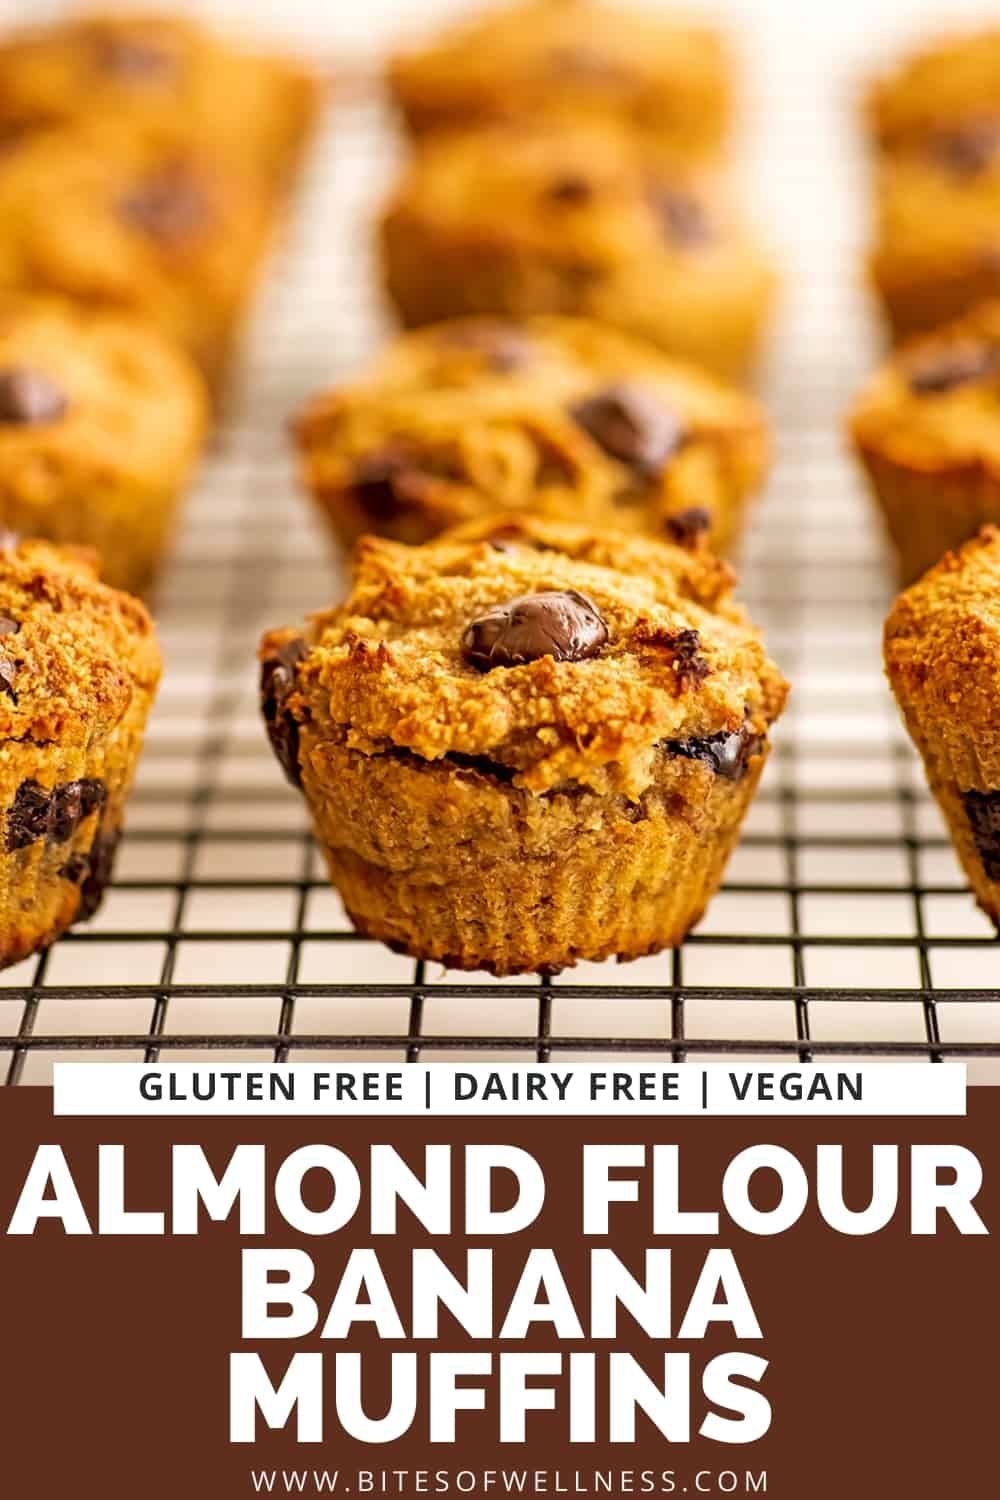 Almond flour banana muffins on a wire cooling rack.